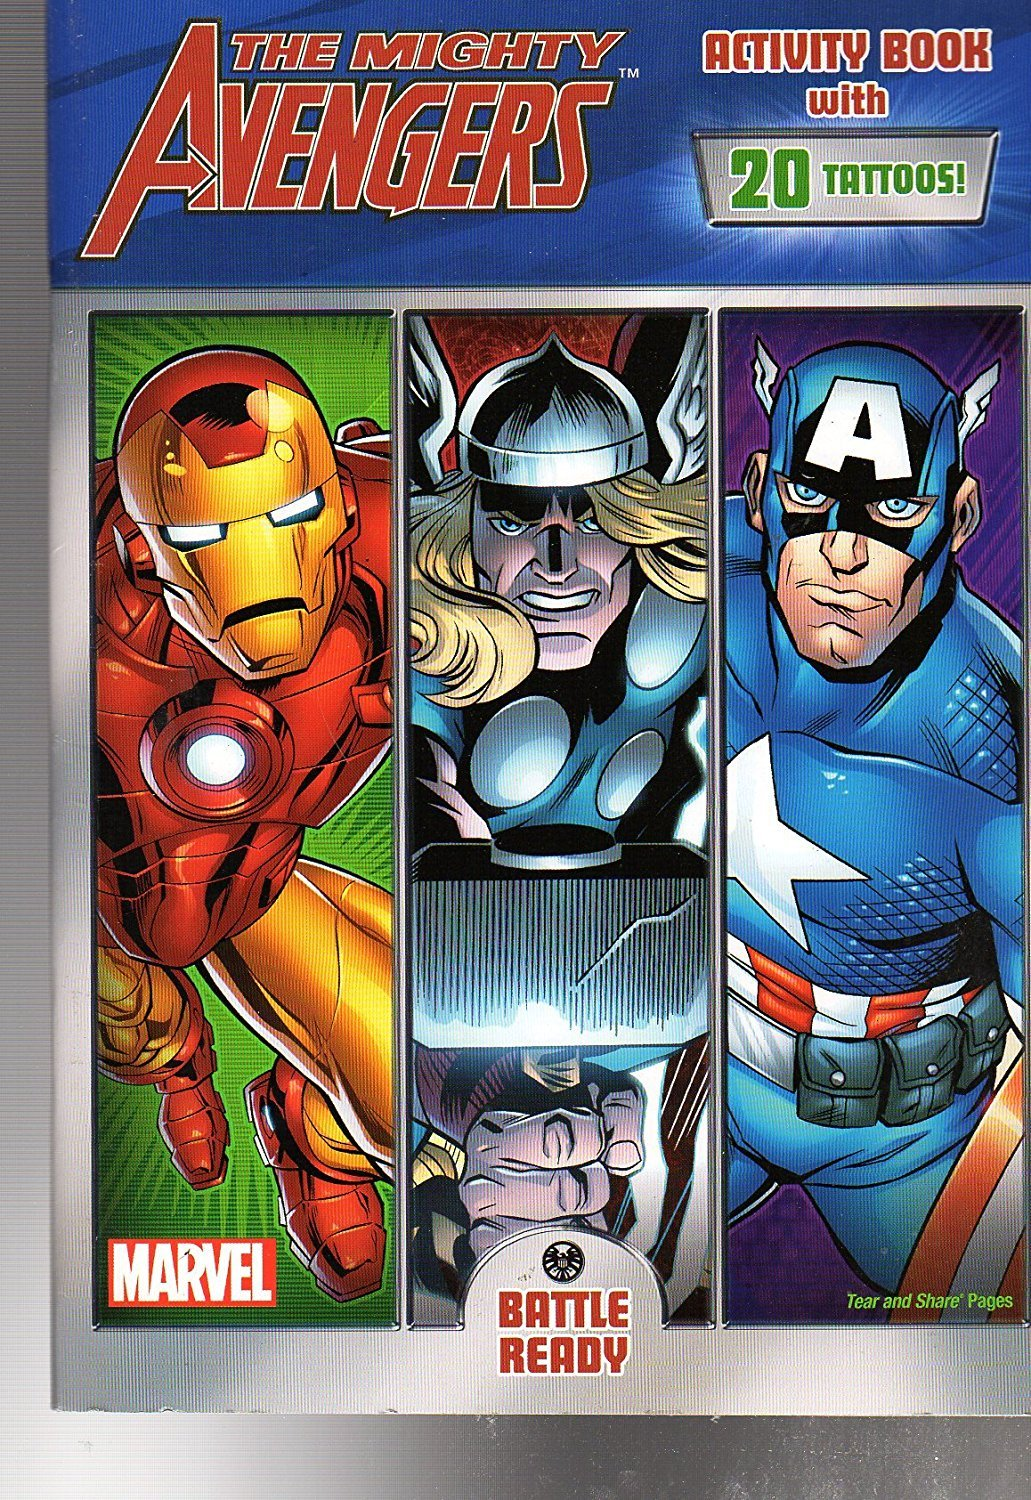 The Mighty Avengers - Activity Book with 20 tattoos